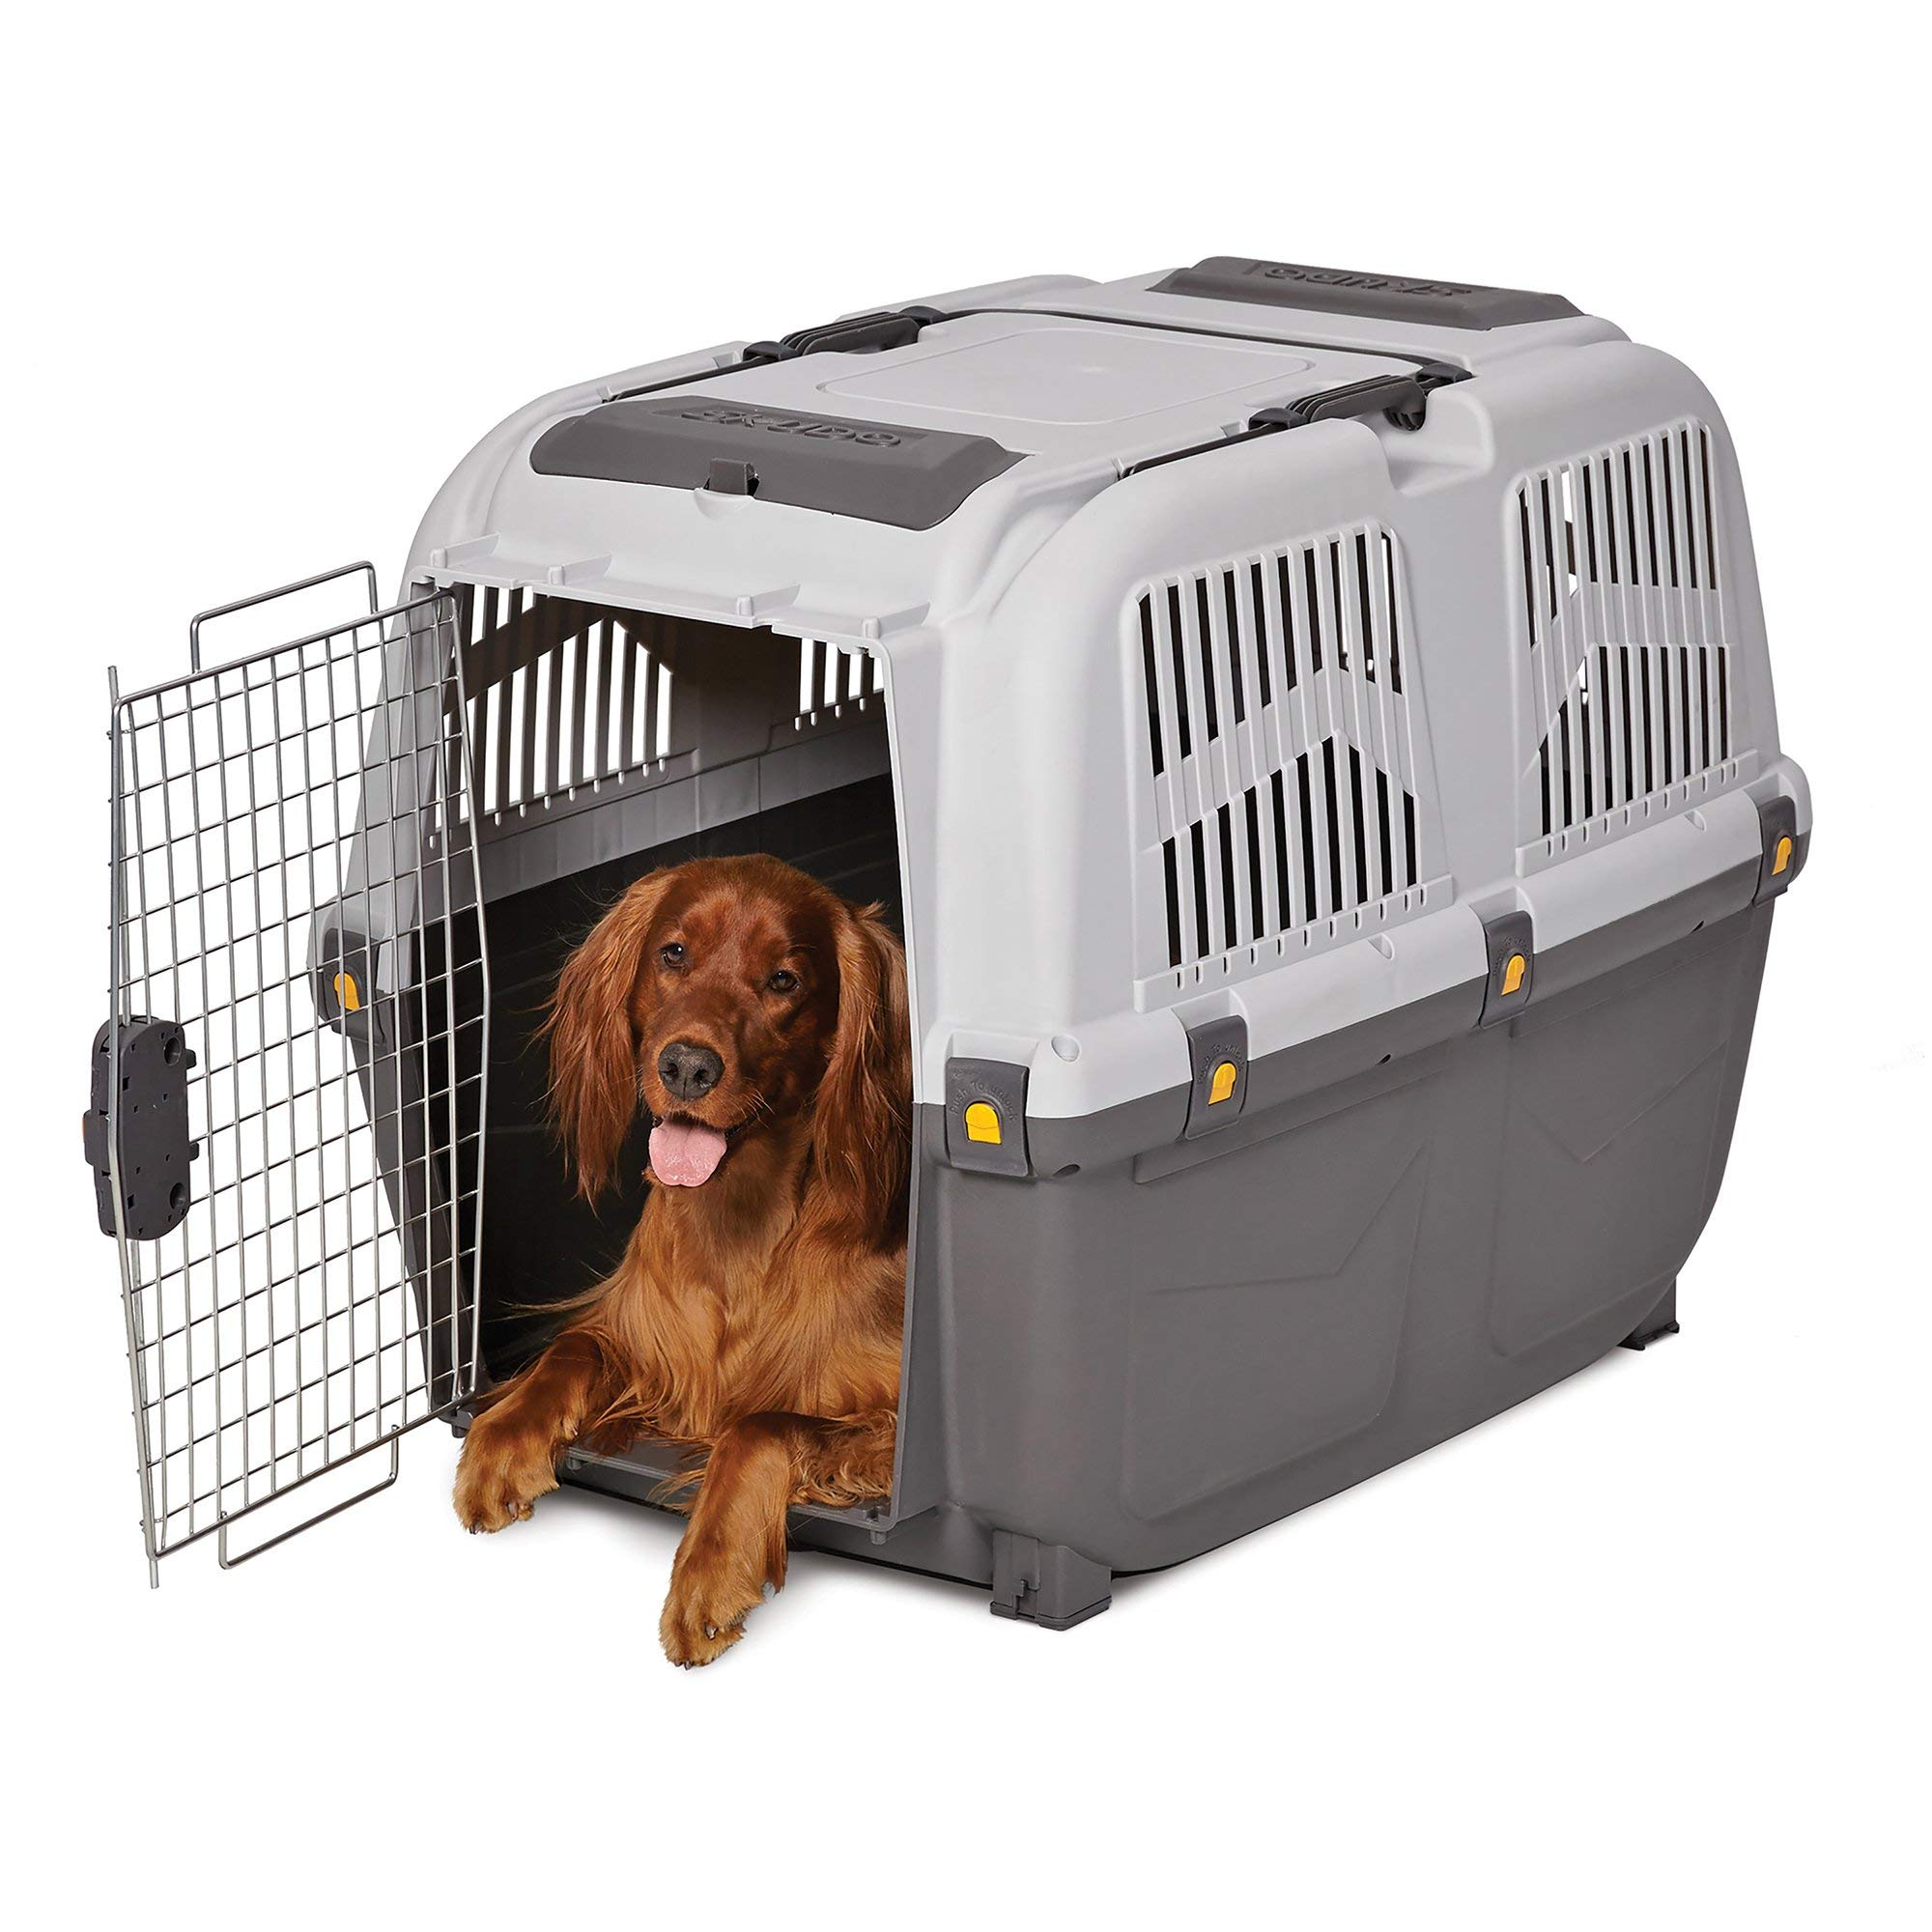 Midwest Skudo Plastic Travel Carrier for Dogs, 31.38'' L X 23.13'' W X 25.5'' H, Large, Gray by MidWest Homes for Pets